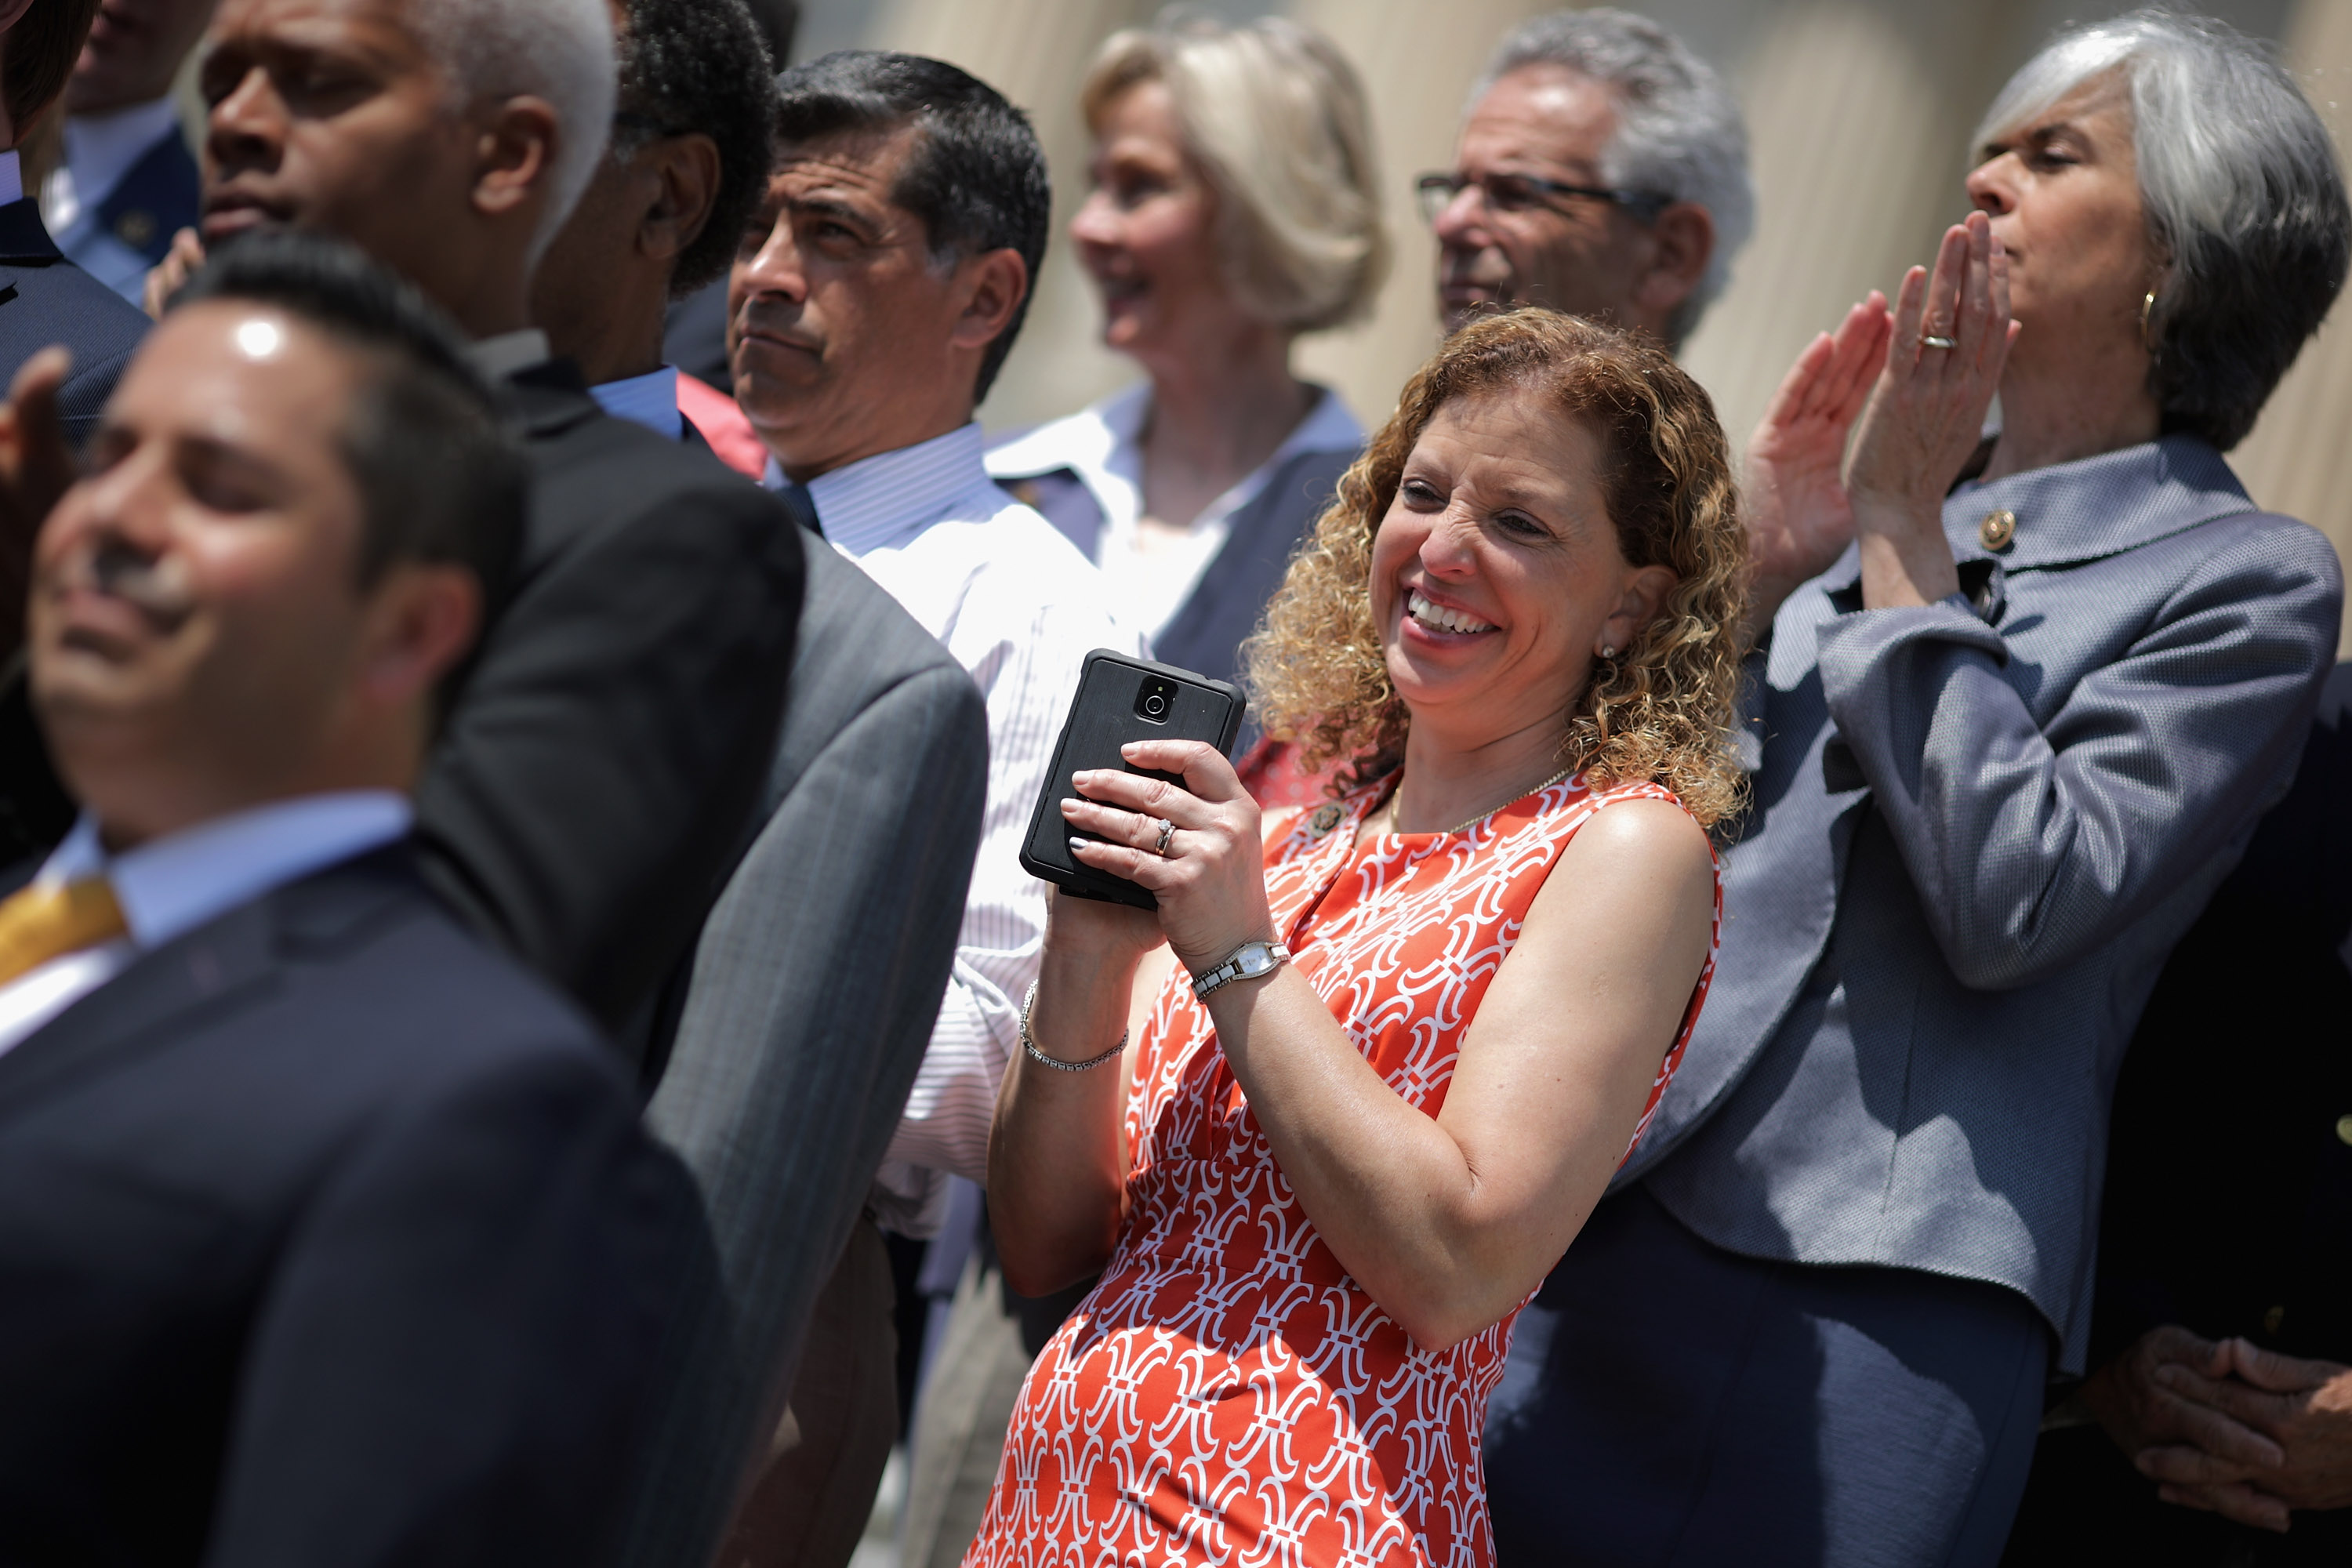 Democratic National Committee Chair Rep. Debbie Wasserman Shultz (D-FL) (C) joins fellow congressional Democrats to call on Republicans to postpone the Memorial Day holiday recess on the steps of the House of Representatives at the U.S. Capitol May 26, 2016 in Washington, DC. Democratic presidential candidate Sen. Bernie Sanders' (D-VT) campaign manager said, 'I think someone else could play a more positive role' as chair of the DNC than Wasserman Schultz, sparking rumors of her being forced from the position.